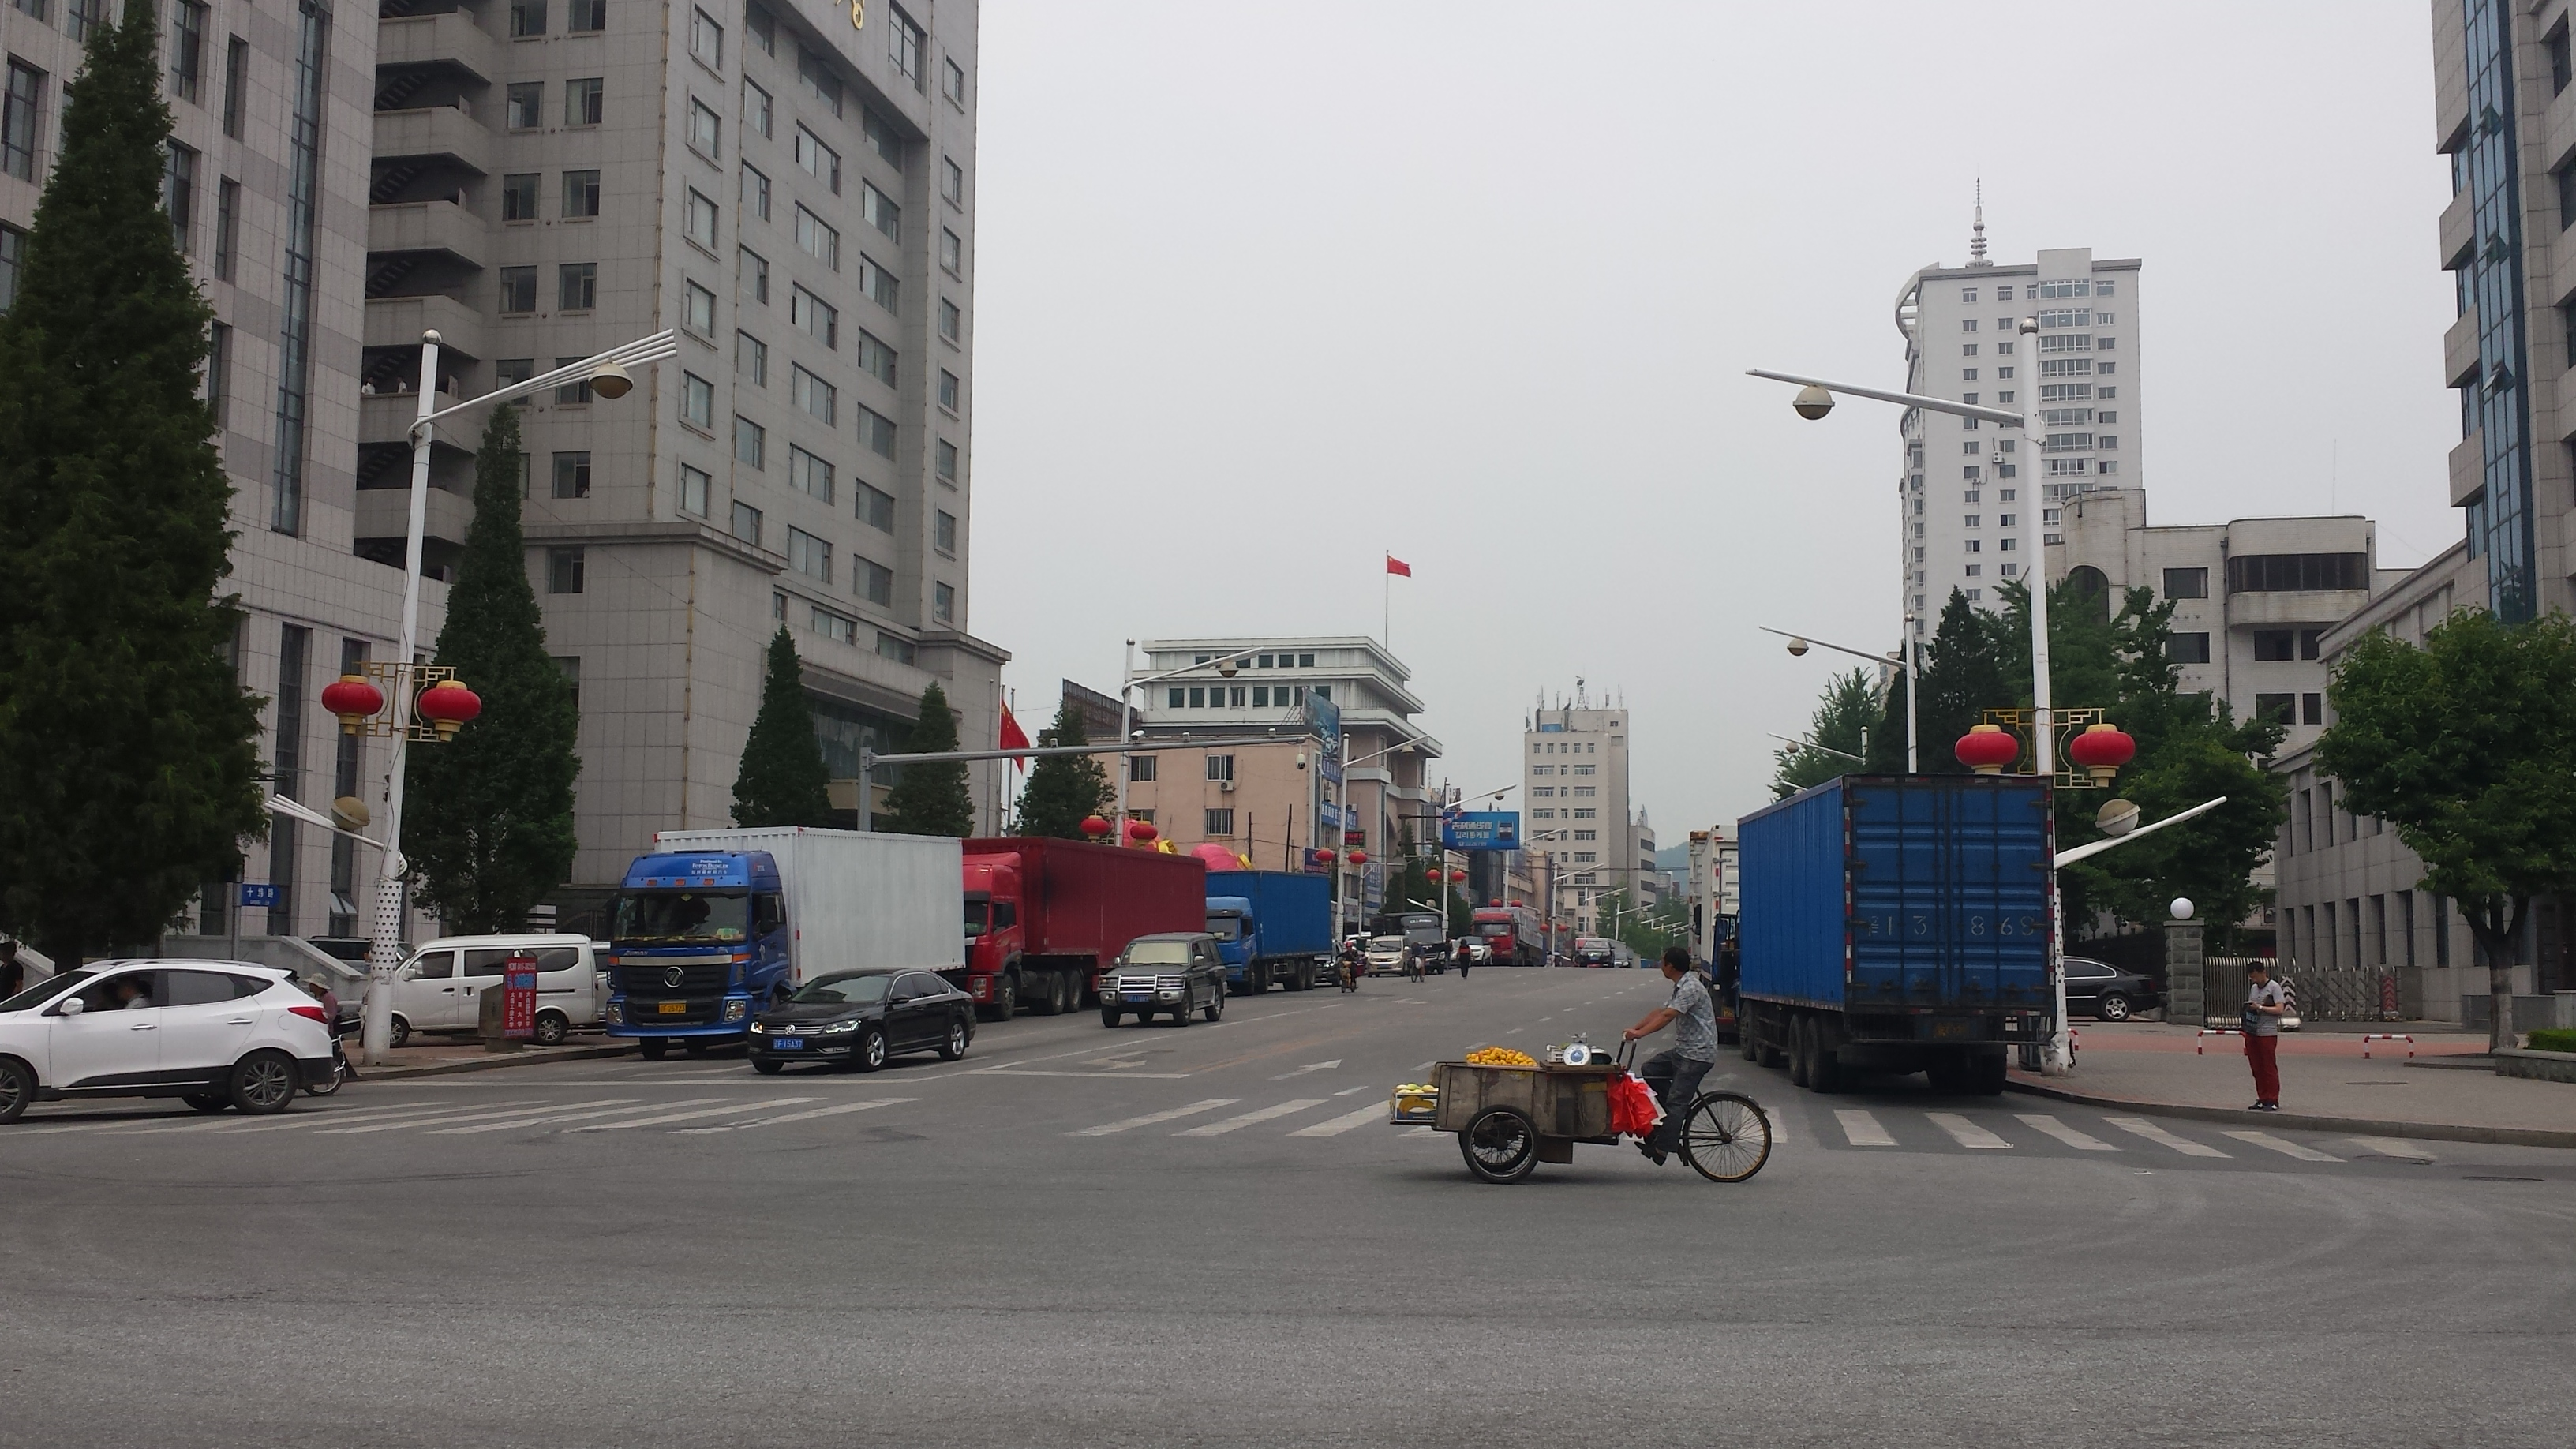 n economy watch acirc foreign direct investment both sides of the street at one of the main intersections in central dandong waiting to go into the customs inspection area to cross into